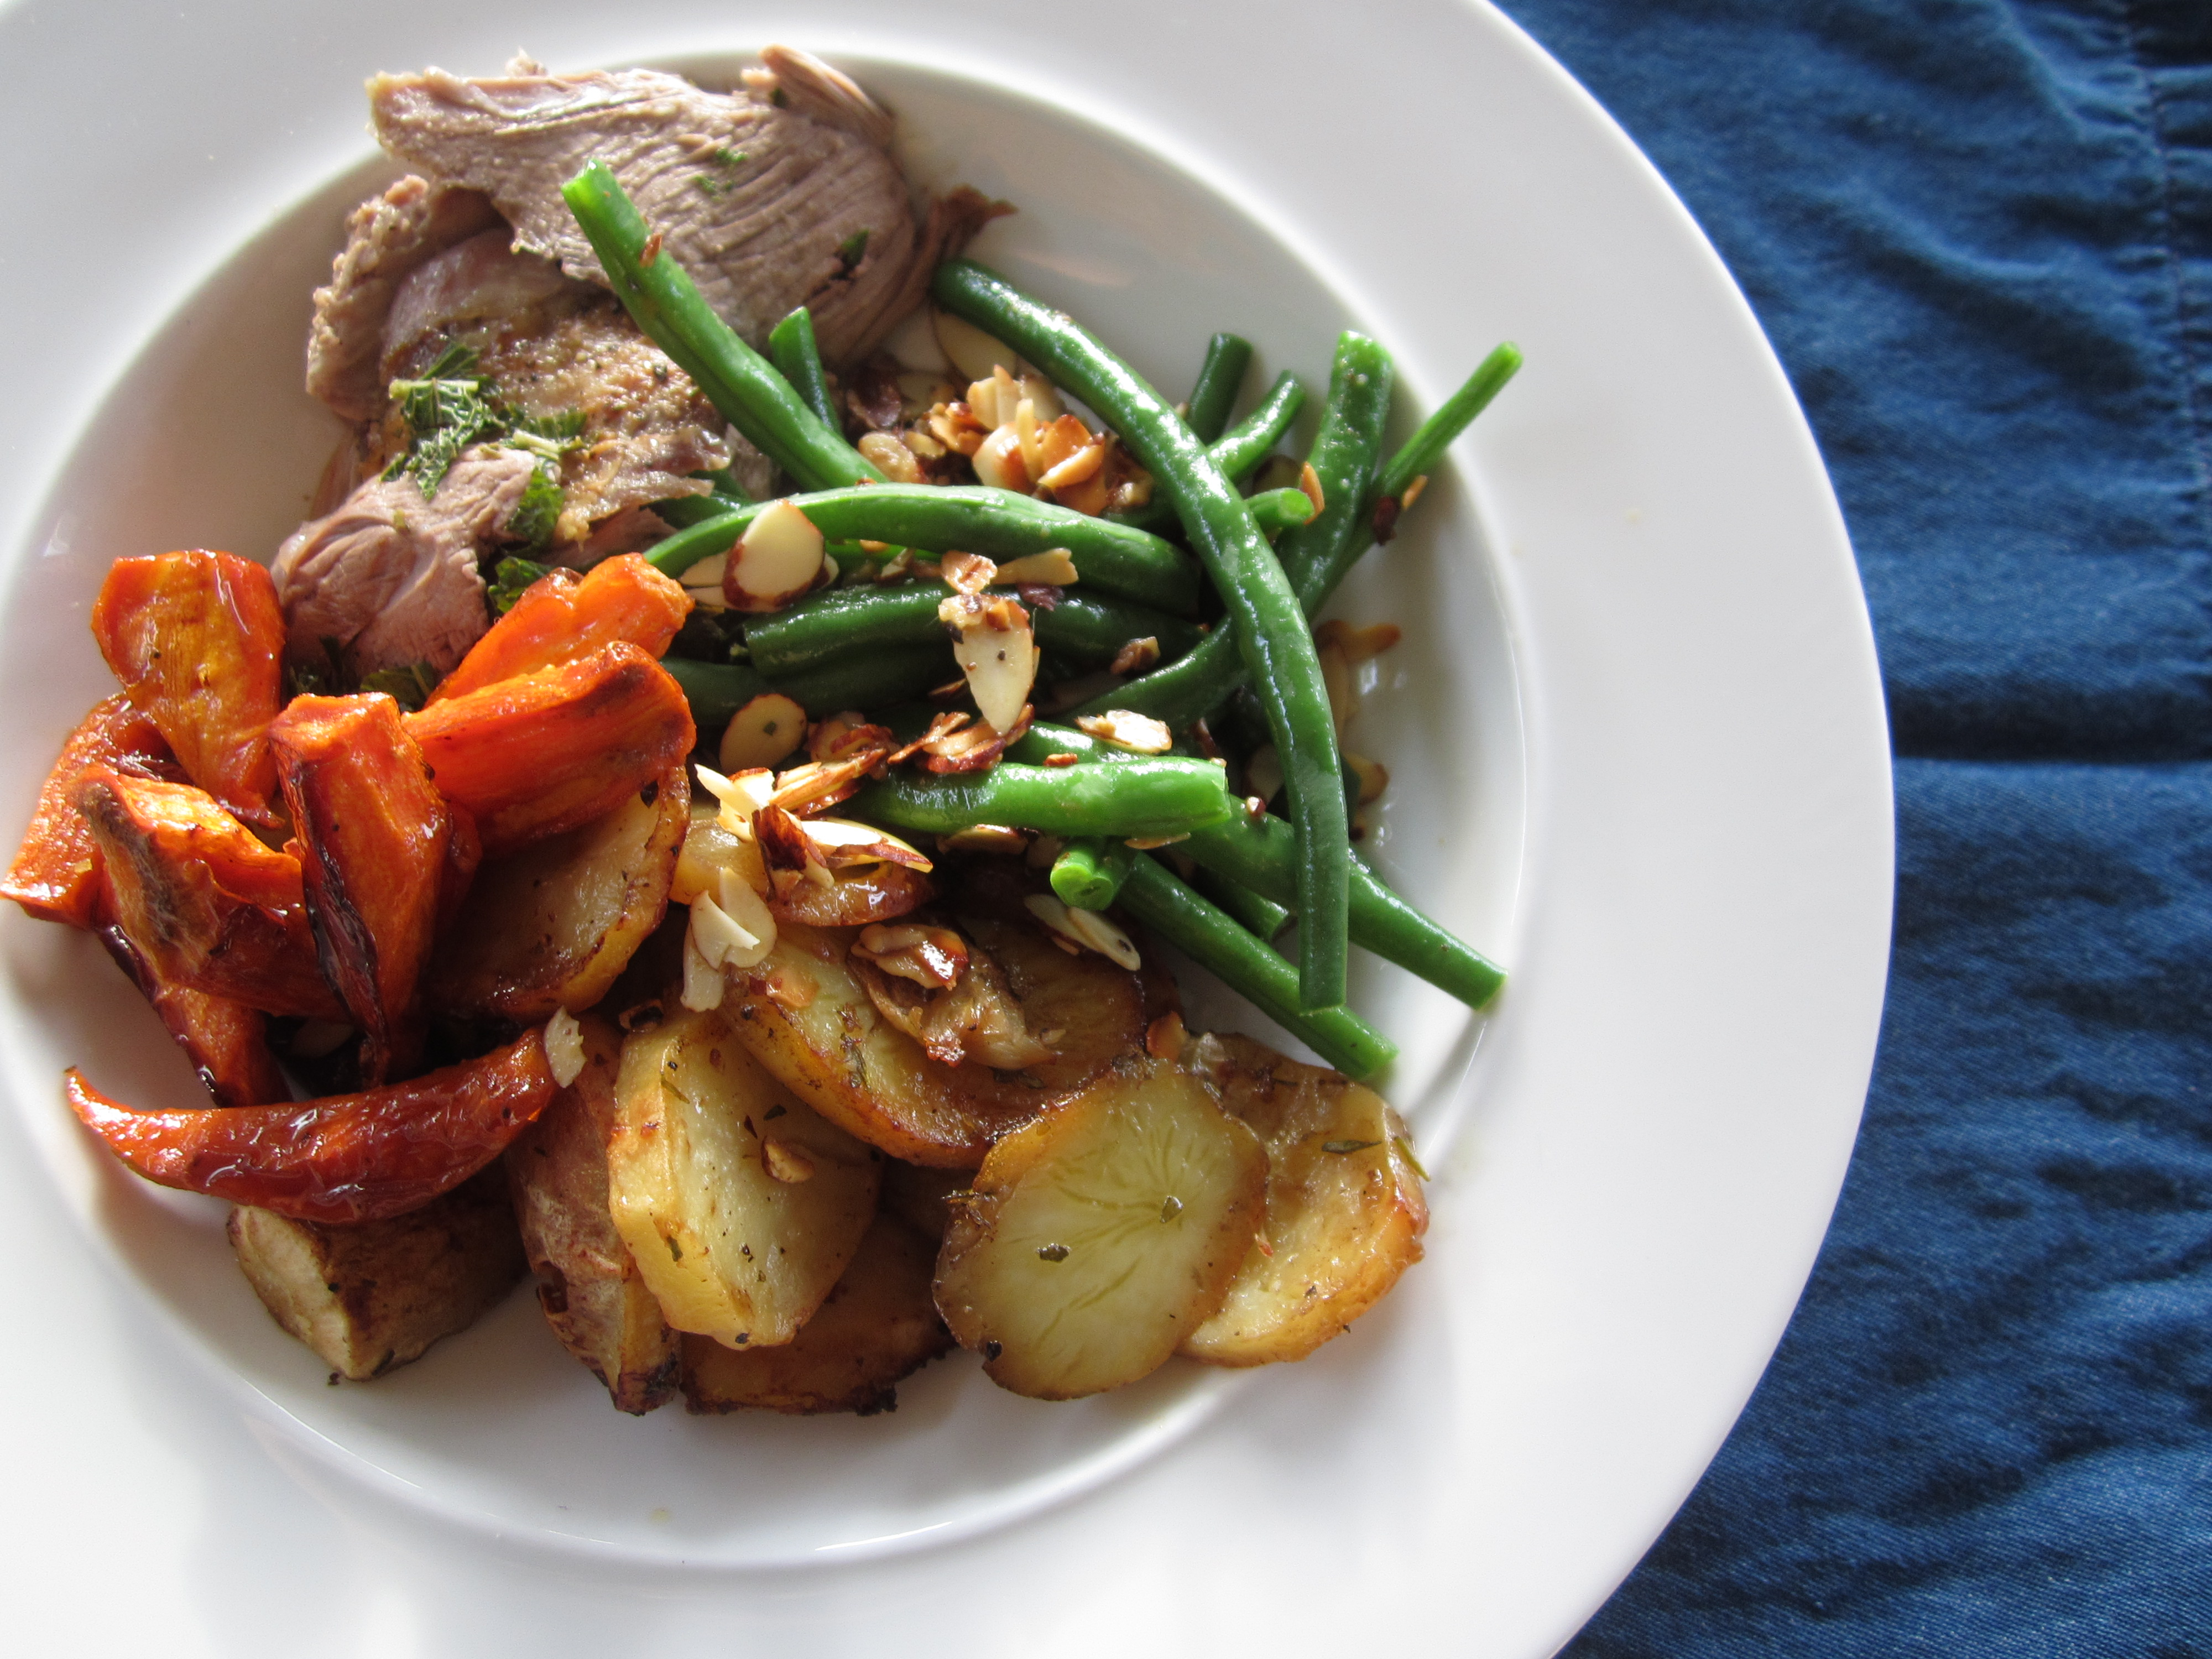 Food dec 311212 077 new zealand home cook for Authentic new zealand cuisine